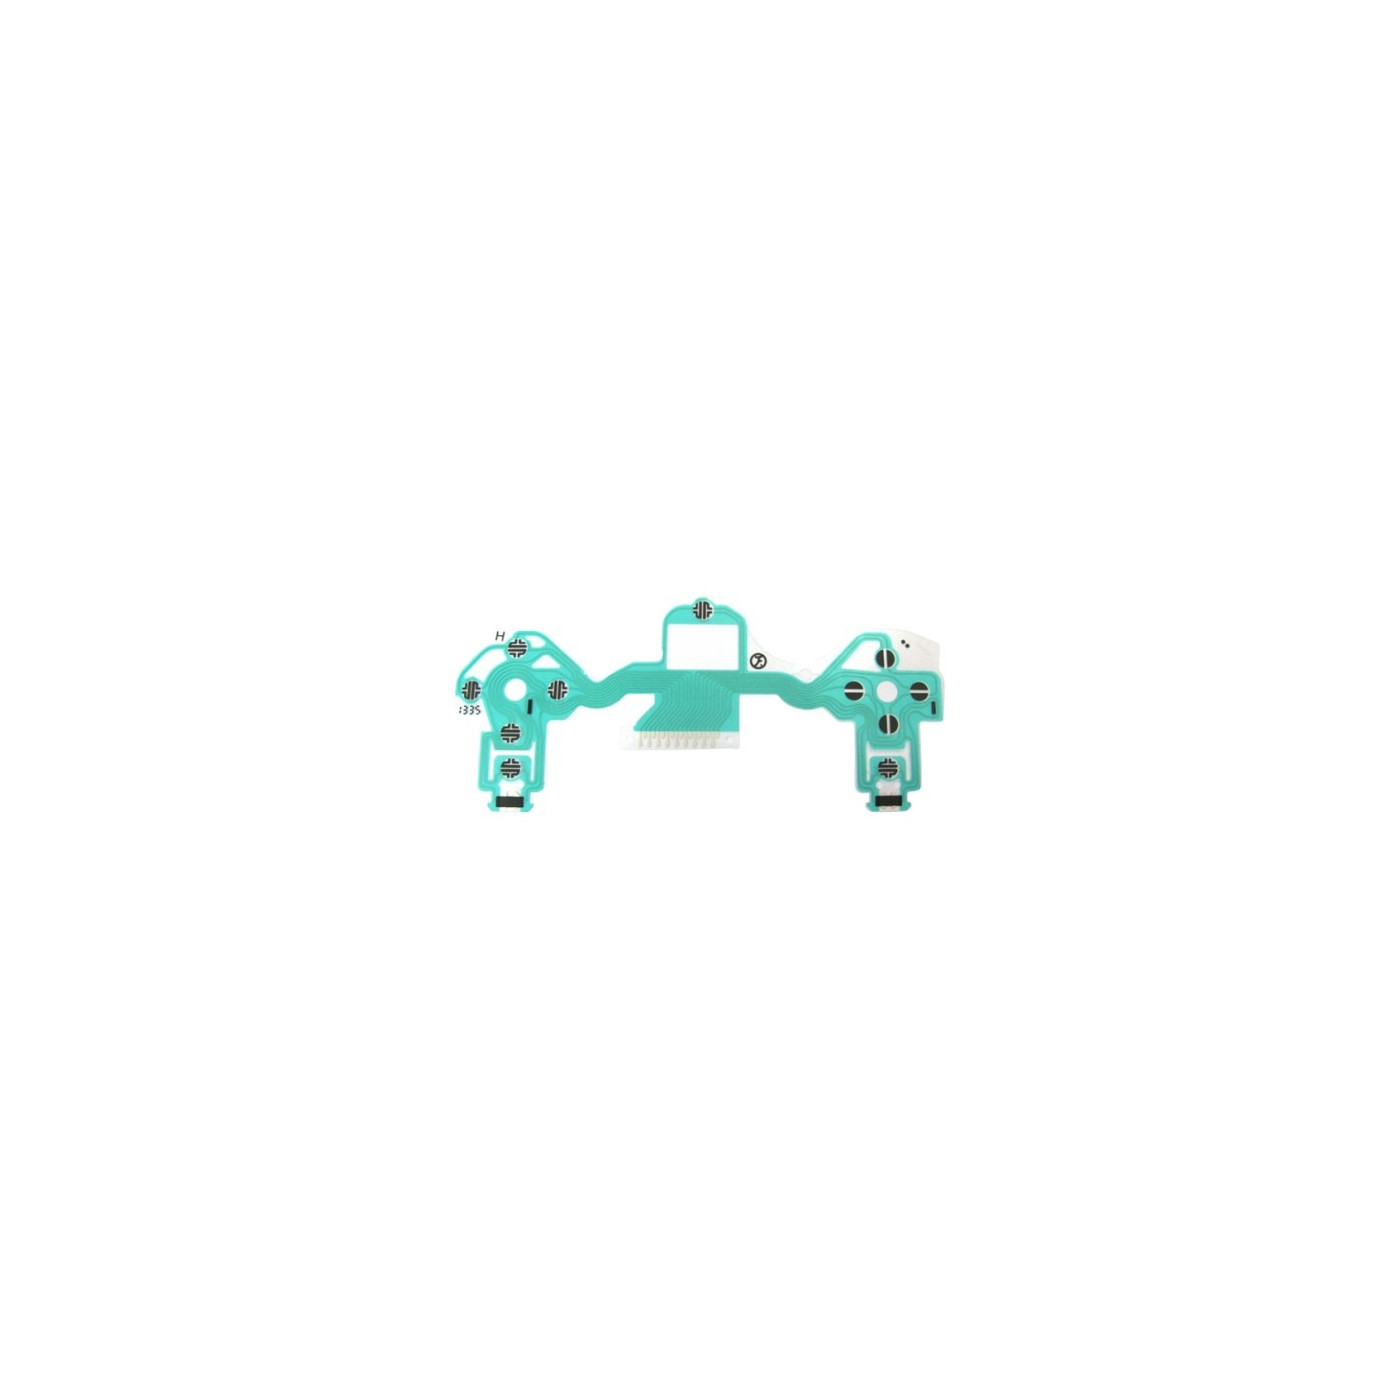 FLAT BUTTONS BUTTONS INTERNAL PARTS CONTROLLER SONY PLAYSTATION PS4 JOYPAD